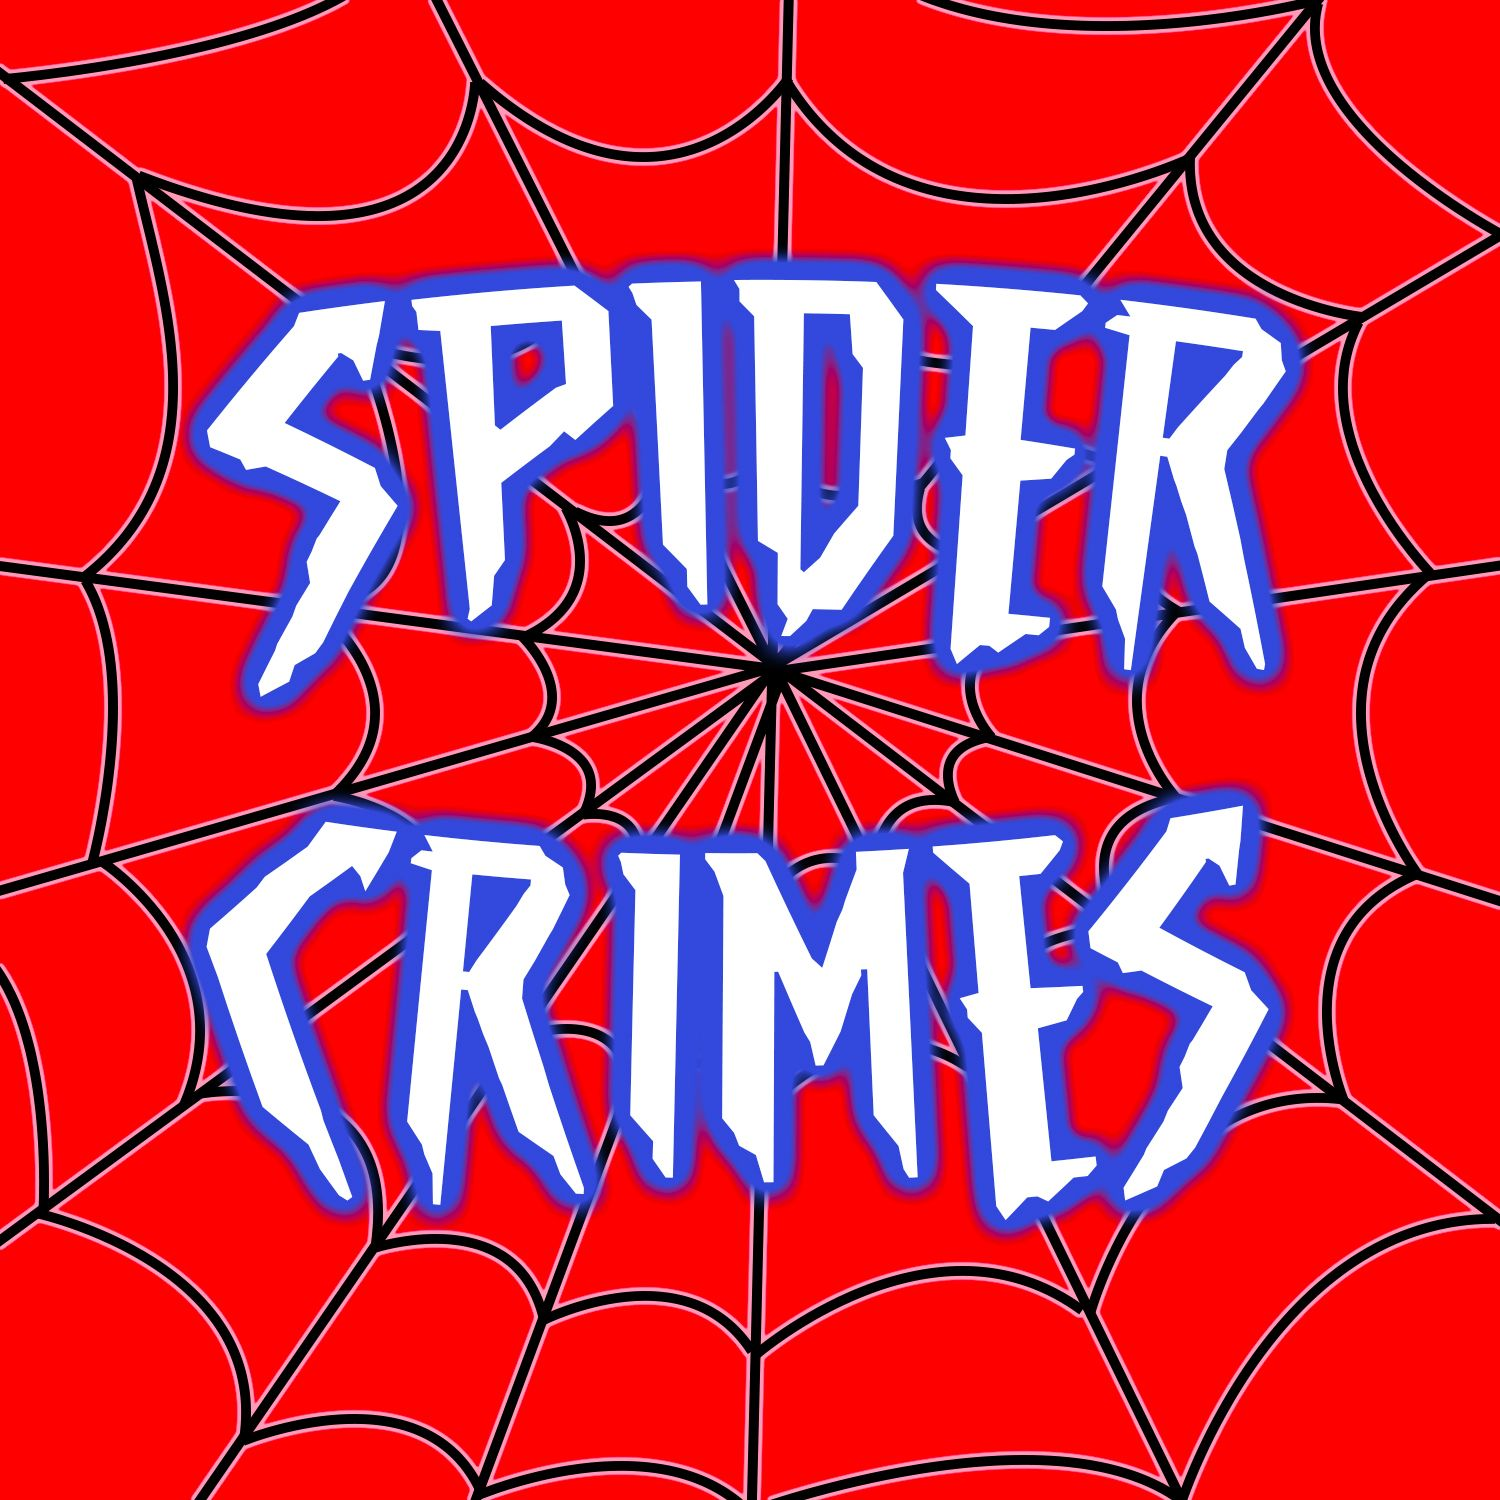 Spider Crimes Feed